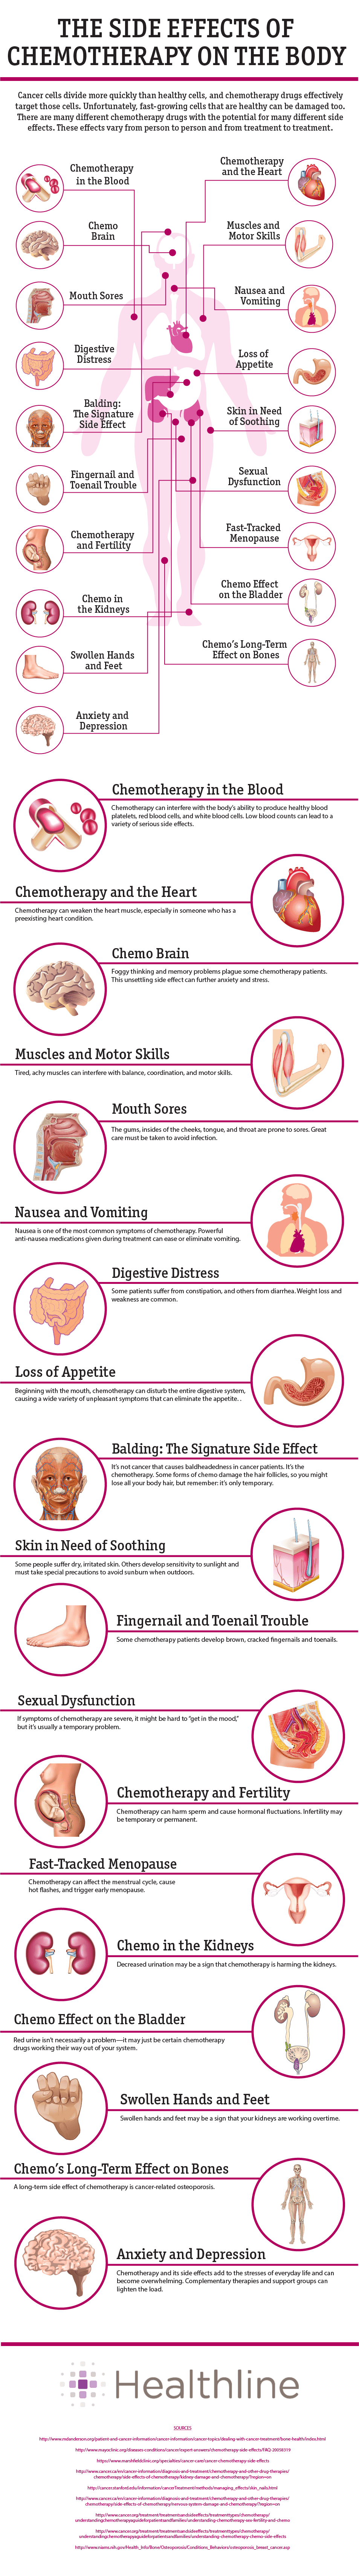 Effects of chemotherapy